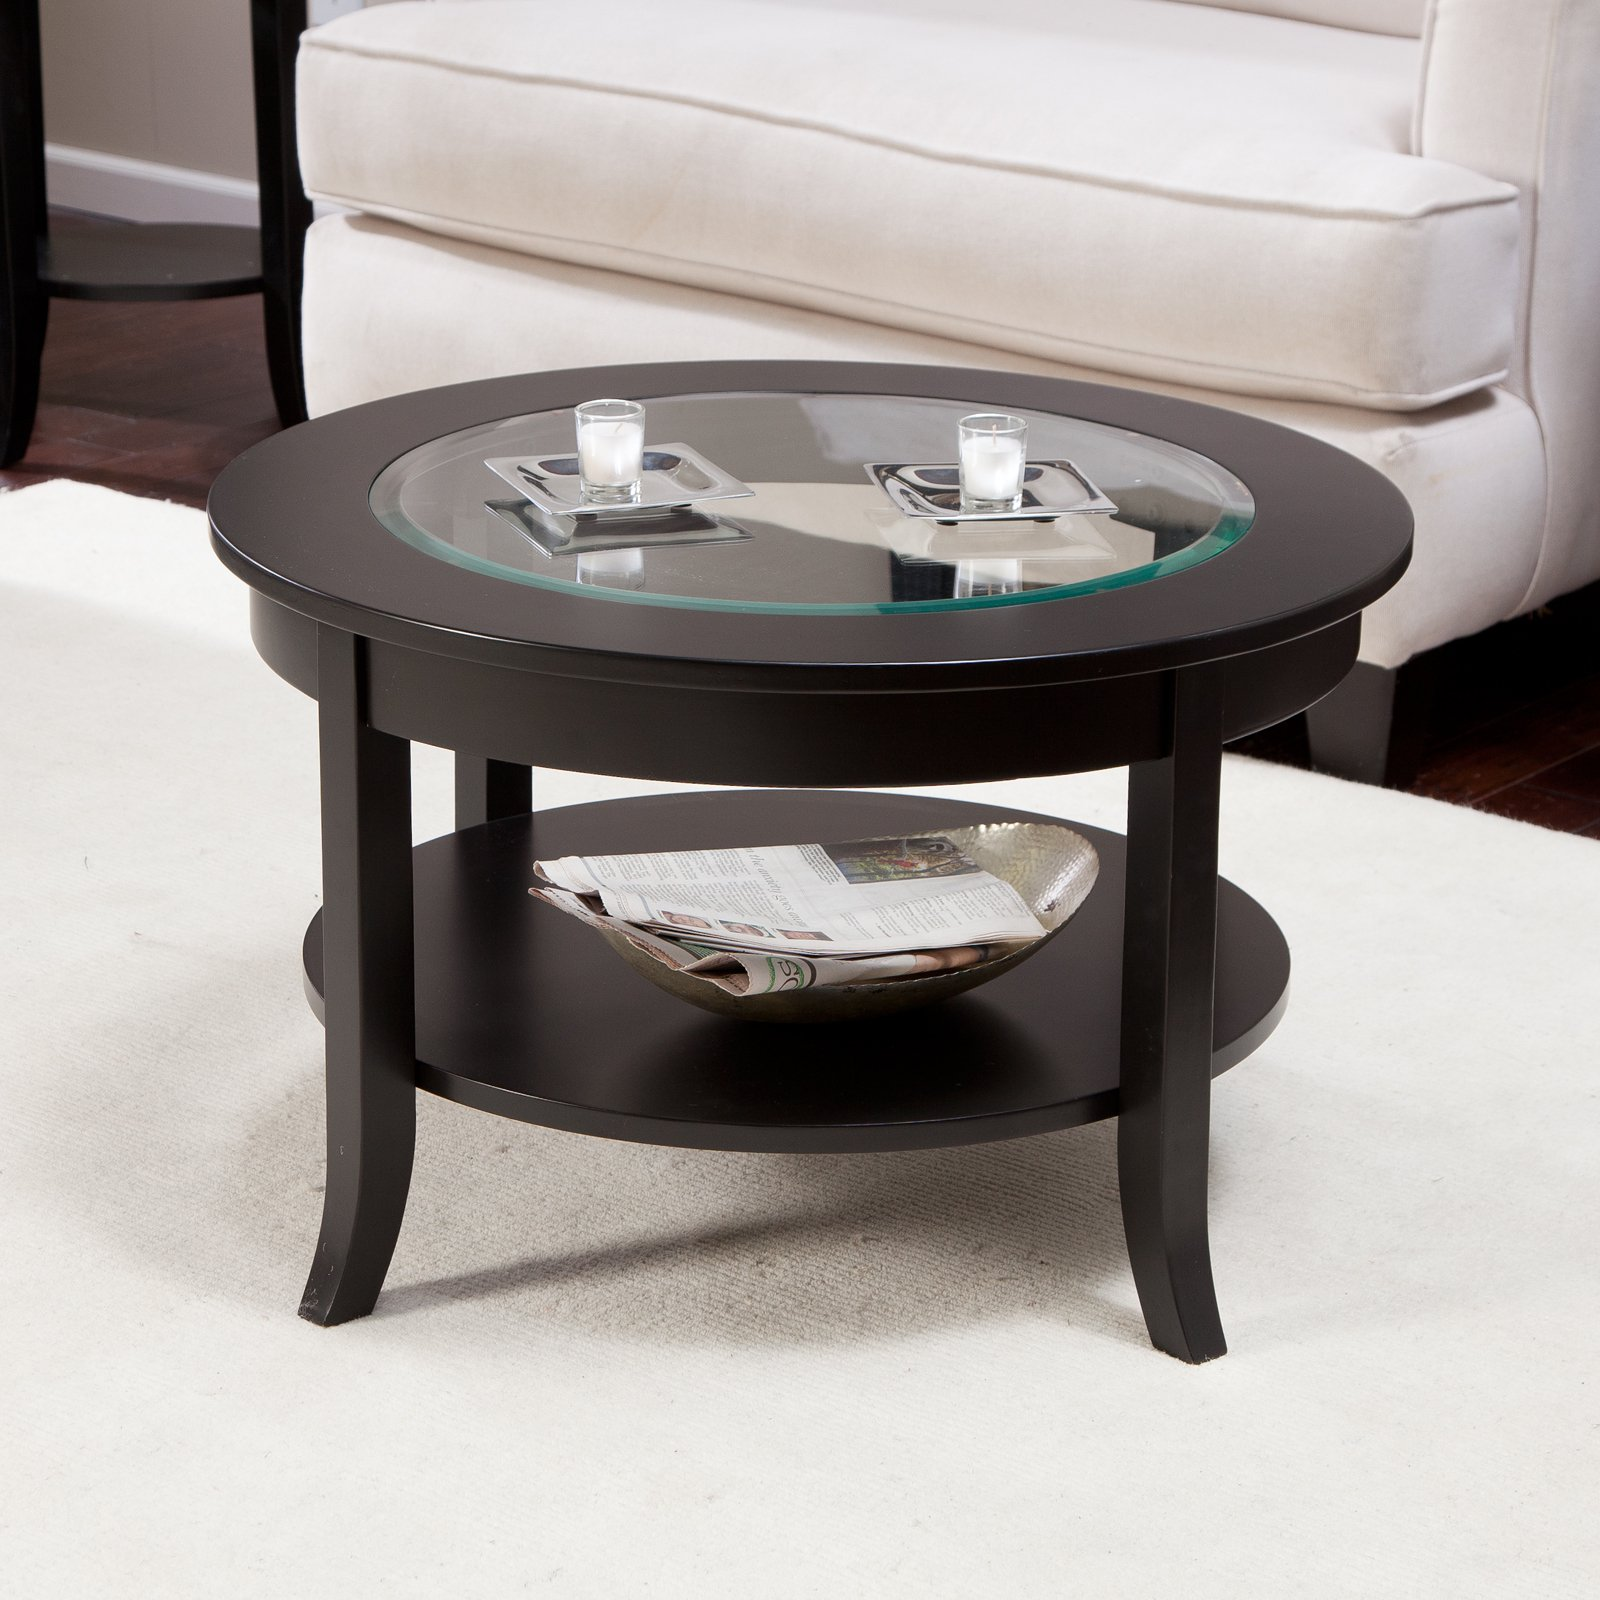 Contemporary Coffee Tables Round Coffee Table Espresso Contemporary Coffee Tables Free Ideas Decor Living Room (Image 4 of 10)